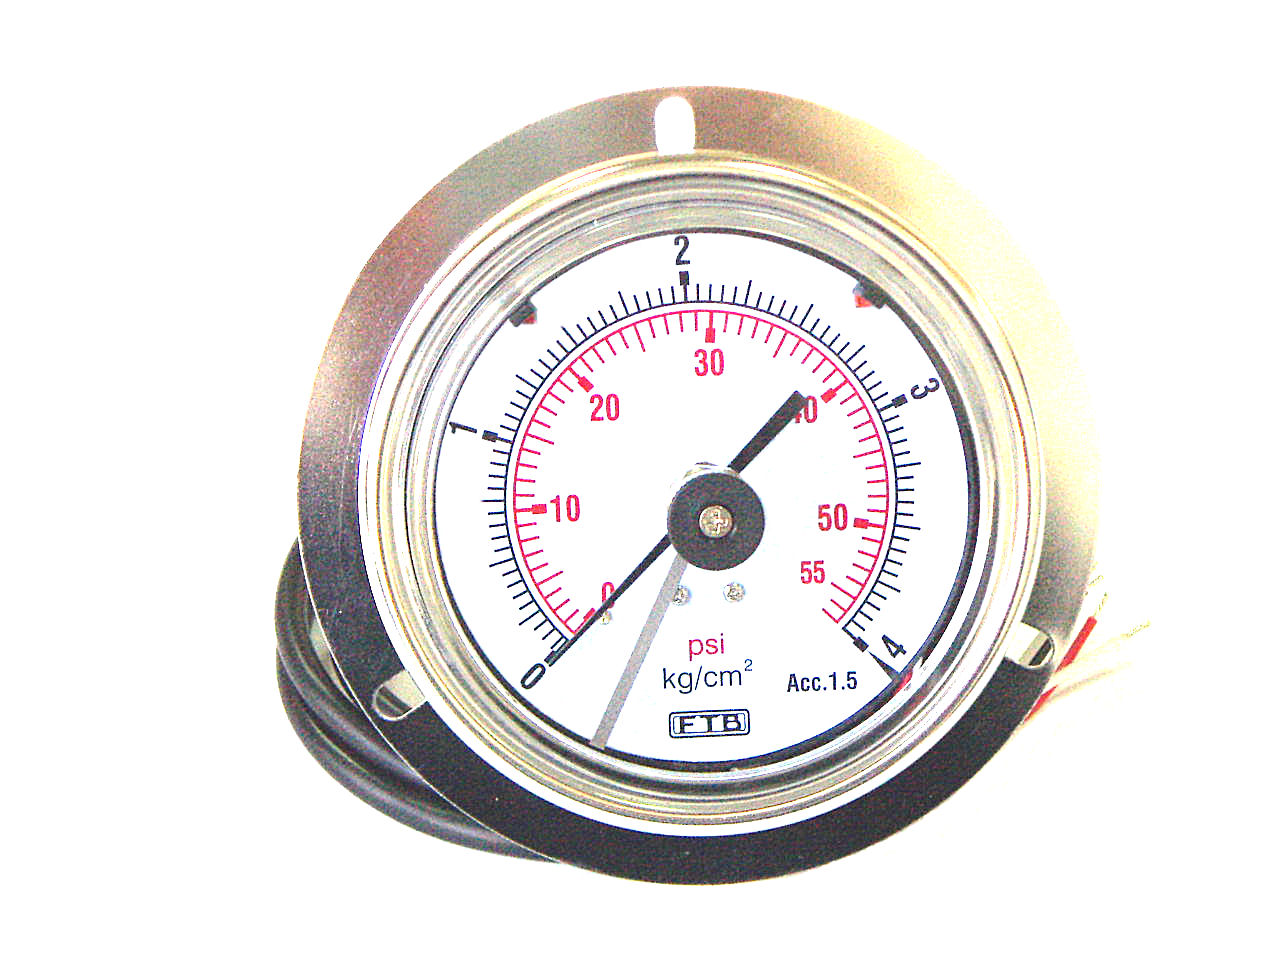 Hydraulic And Pneumatic Pressure Gauge With Switches 2 Way Switch The Eepg 50 63 Non Contact Type Is Manufactured Under Ftb Developed